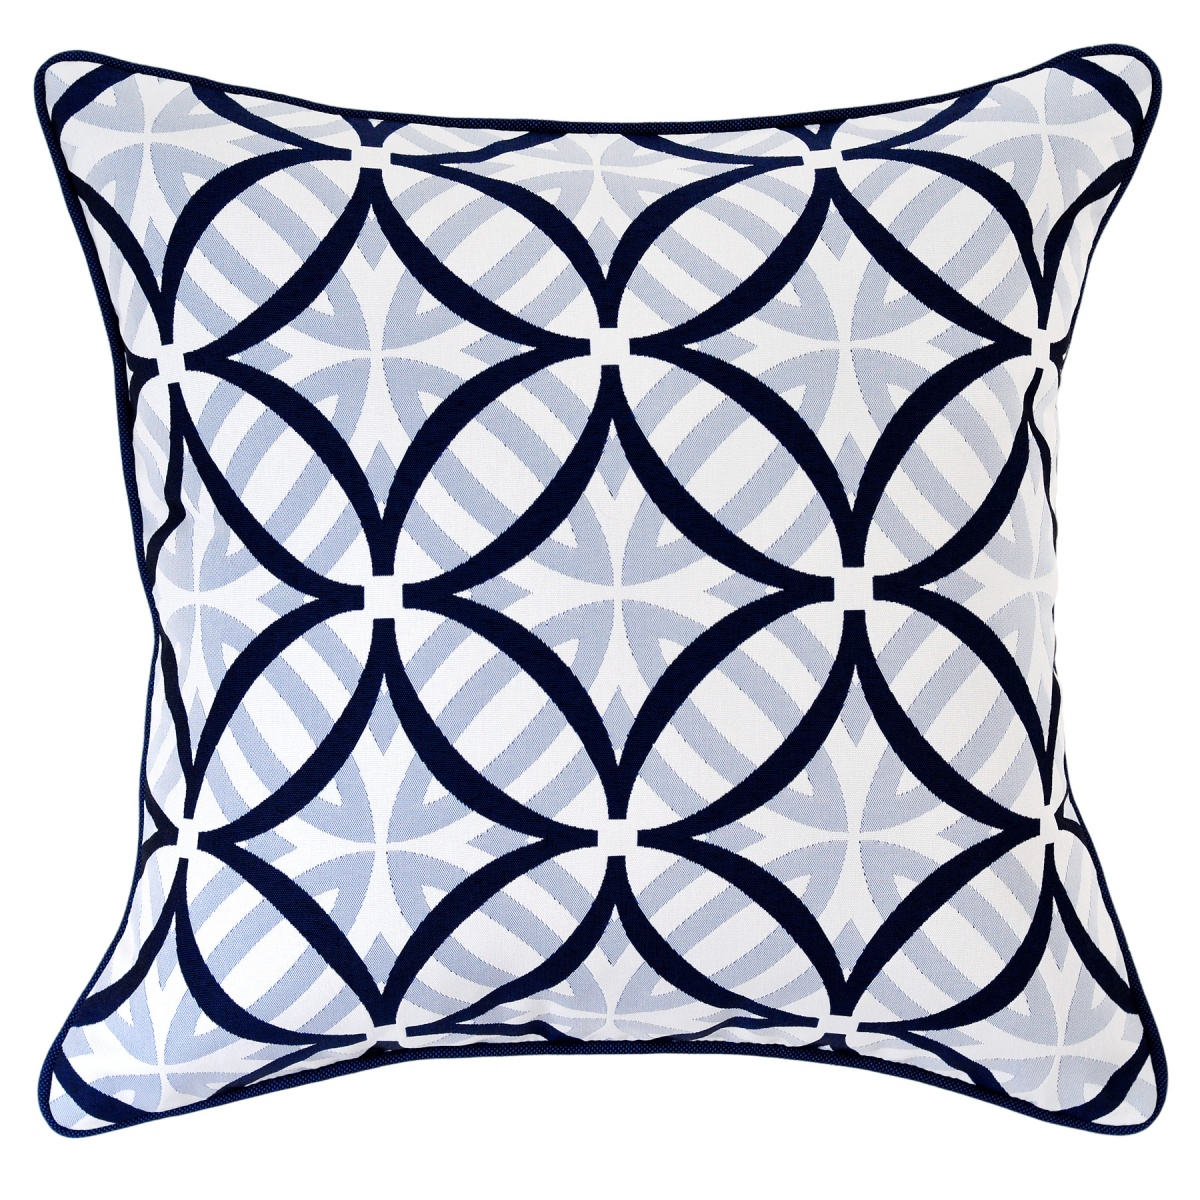 Coolum Marine Outdoor Cushion with Navy Piping - 45x45cm